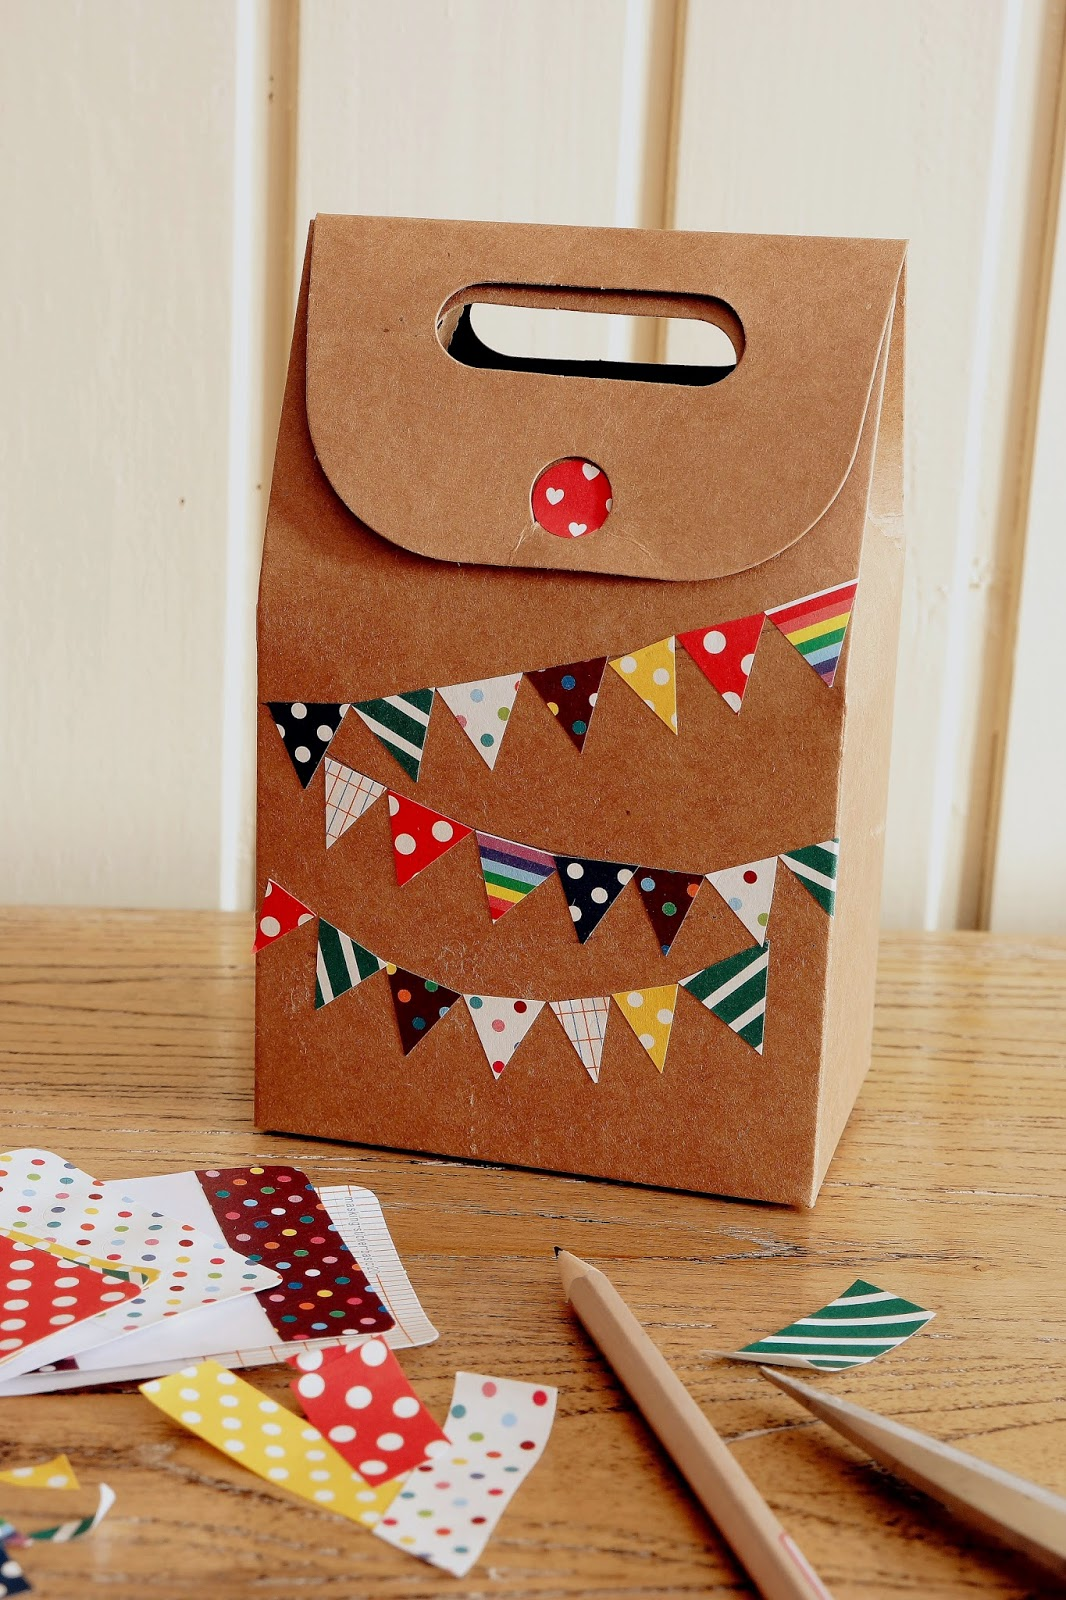 yozo craft ideas to decorate gift box